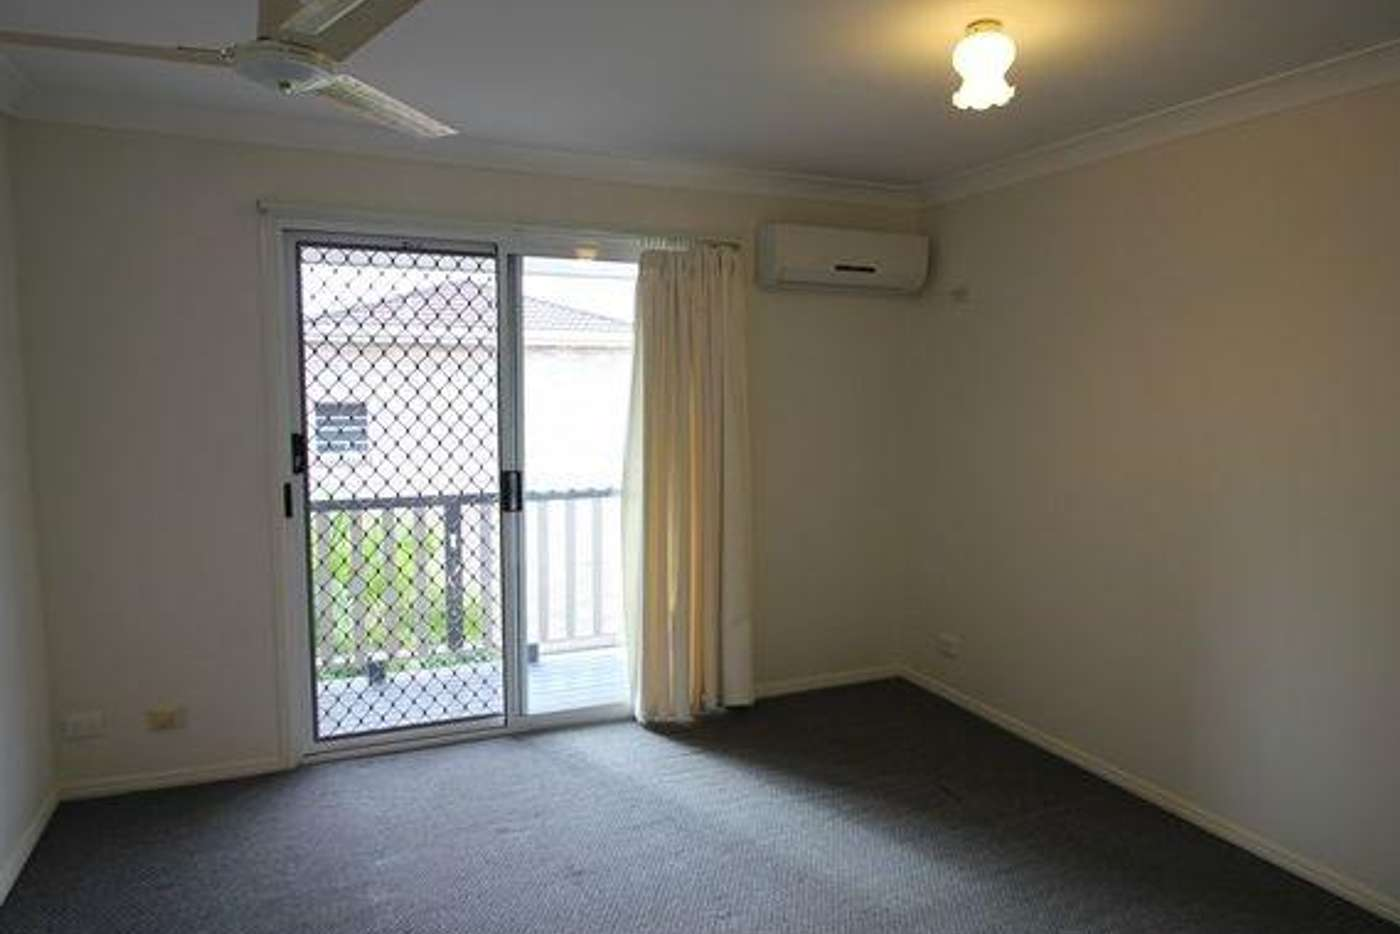 Seventh view of Homely townhouse listing, 4T/16 Arcadia Street, Eight Mile Plains QLD 4113